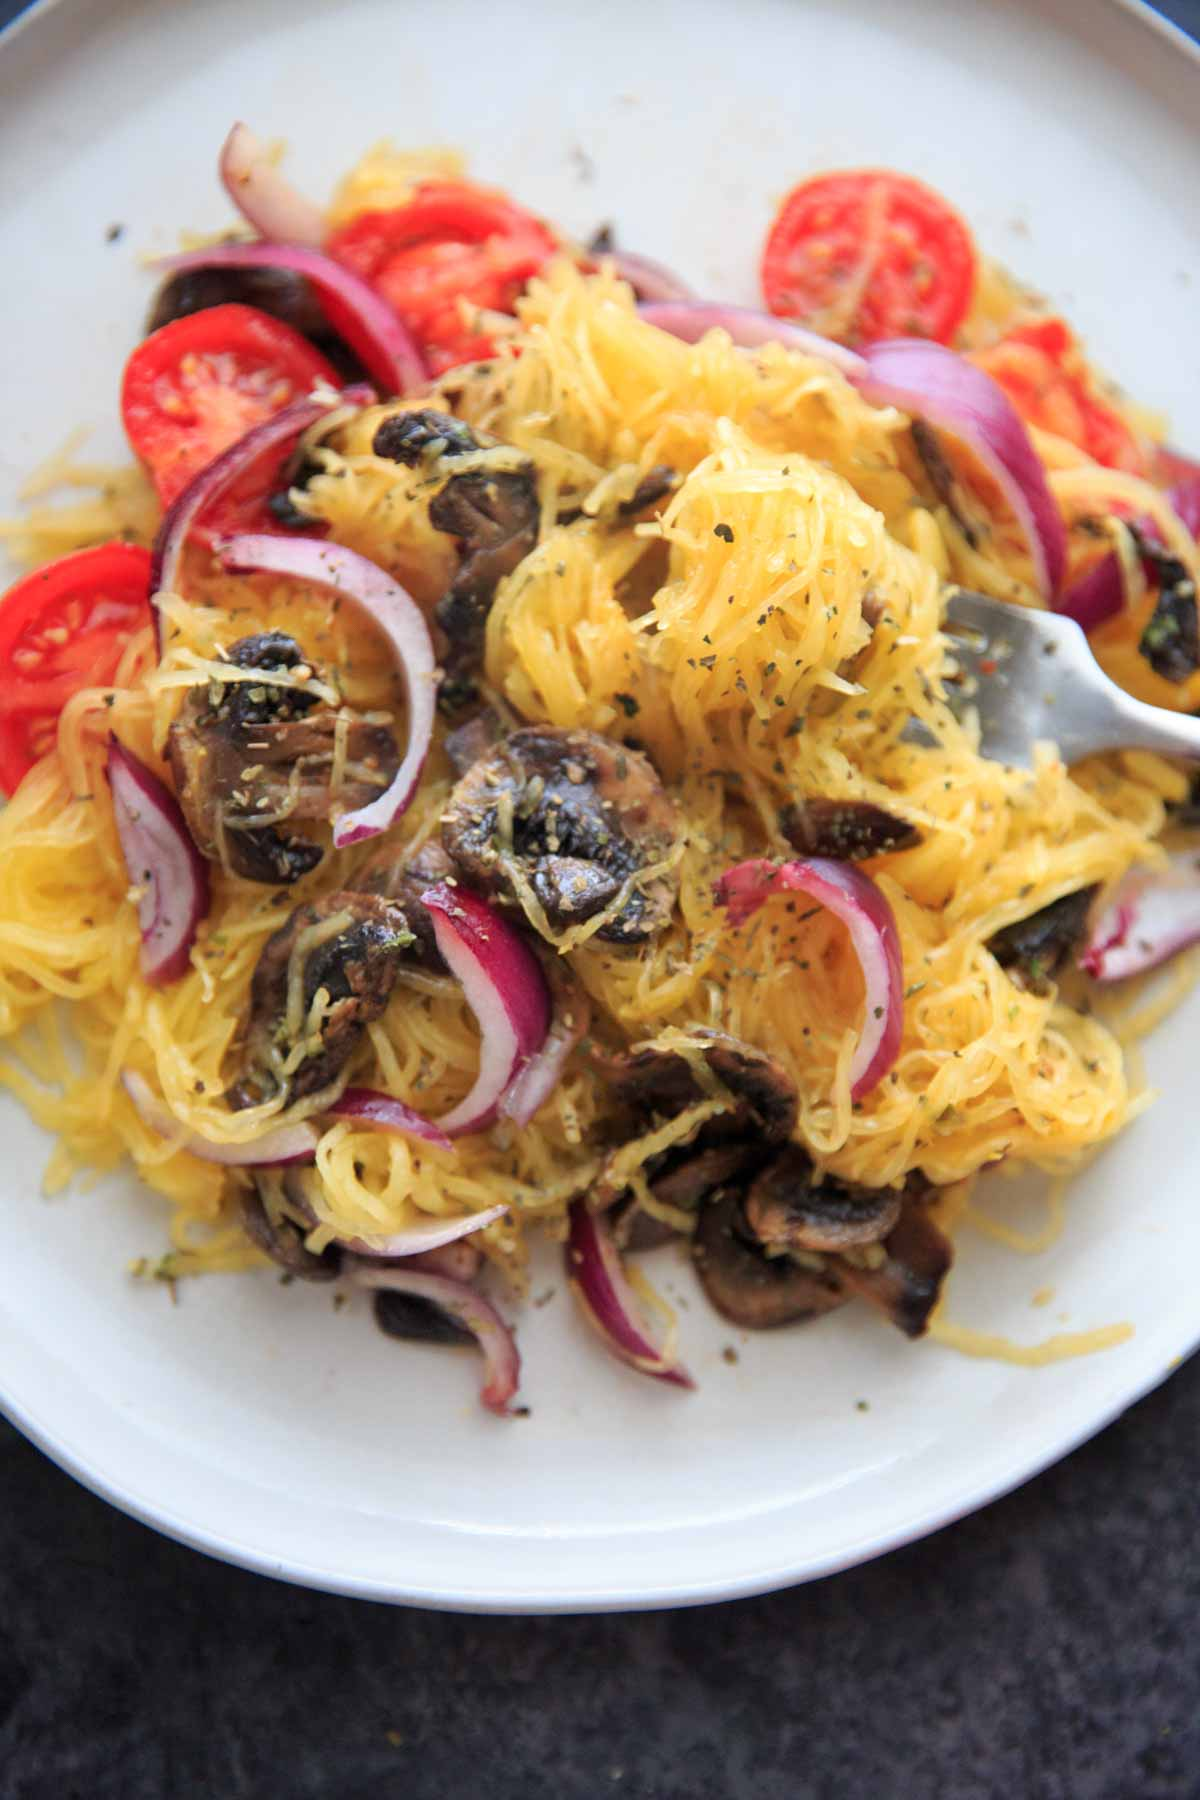 Spaghetti Squash with sauteed mushrooms, tomato and onion. A low-carb, gluten-free and vegan meal full of vegetables and flavor.